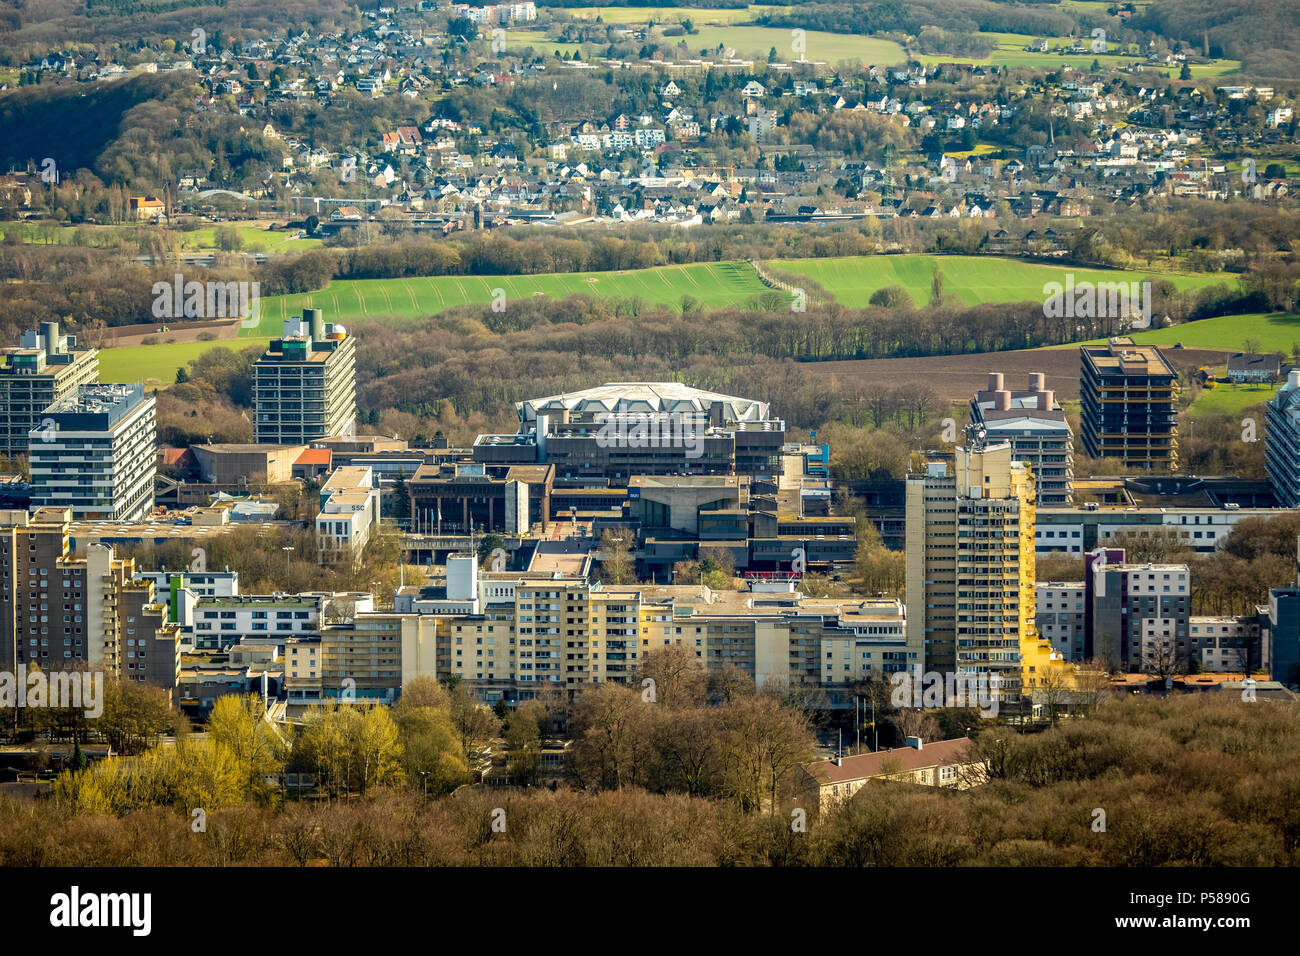 View of the Ruhr-Universität from the north with Audi-Max lecture hall in Bochum in NRW. Bochum, Ruhr area, North Rhine-Westphalia, Germany, Bochum, D - Stock Image